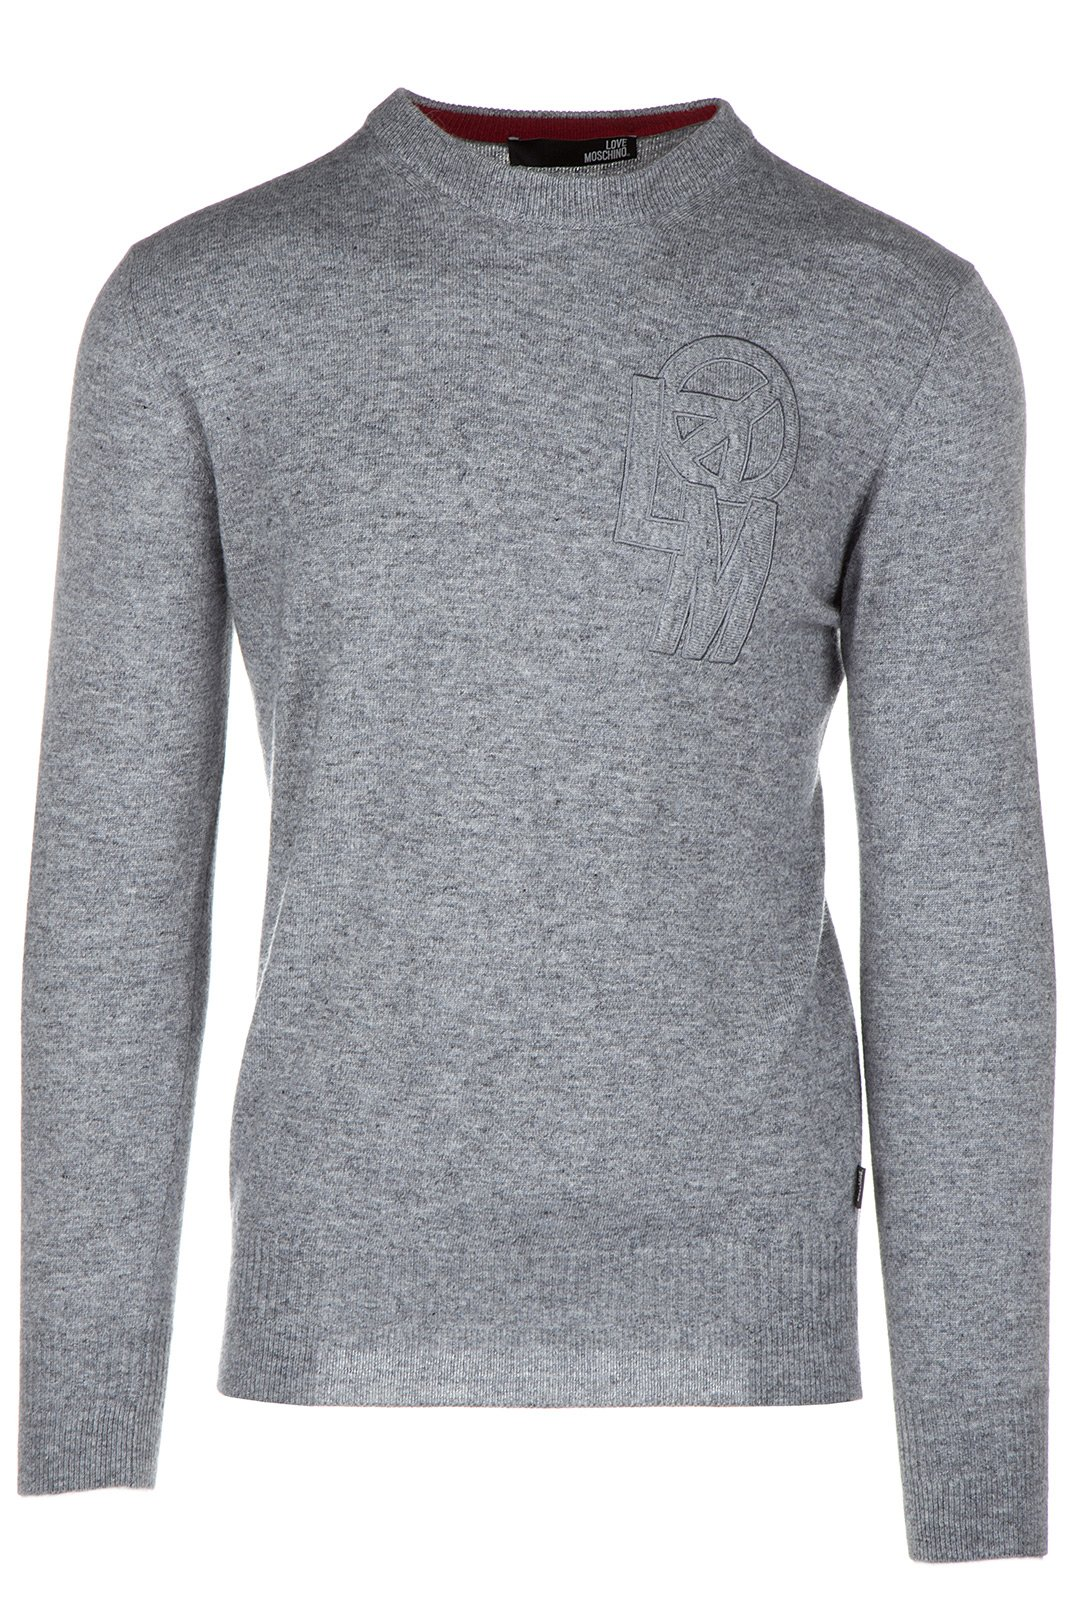 Love Moschino Men's Crew Neck Neckline Jumper Sweater Pullover Grey US Size M (US M) M S 5U6 01 X 0927 40